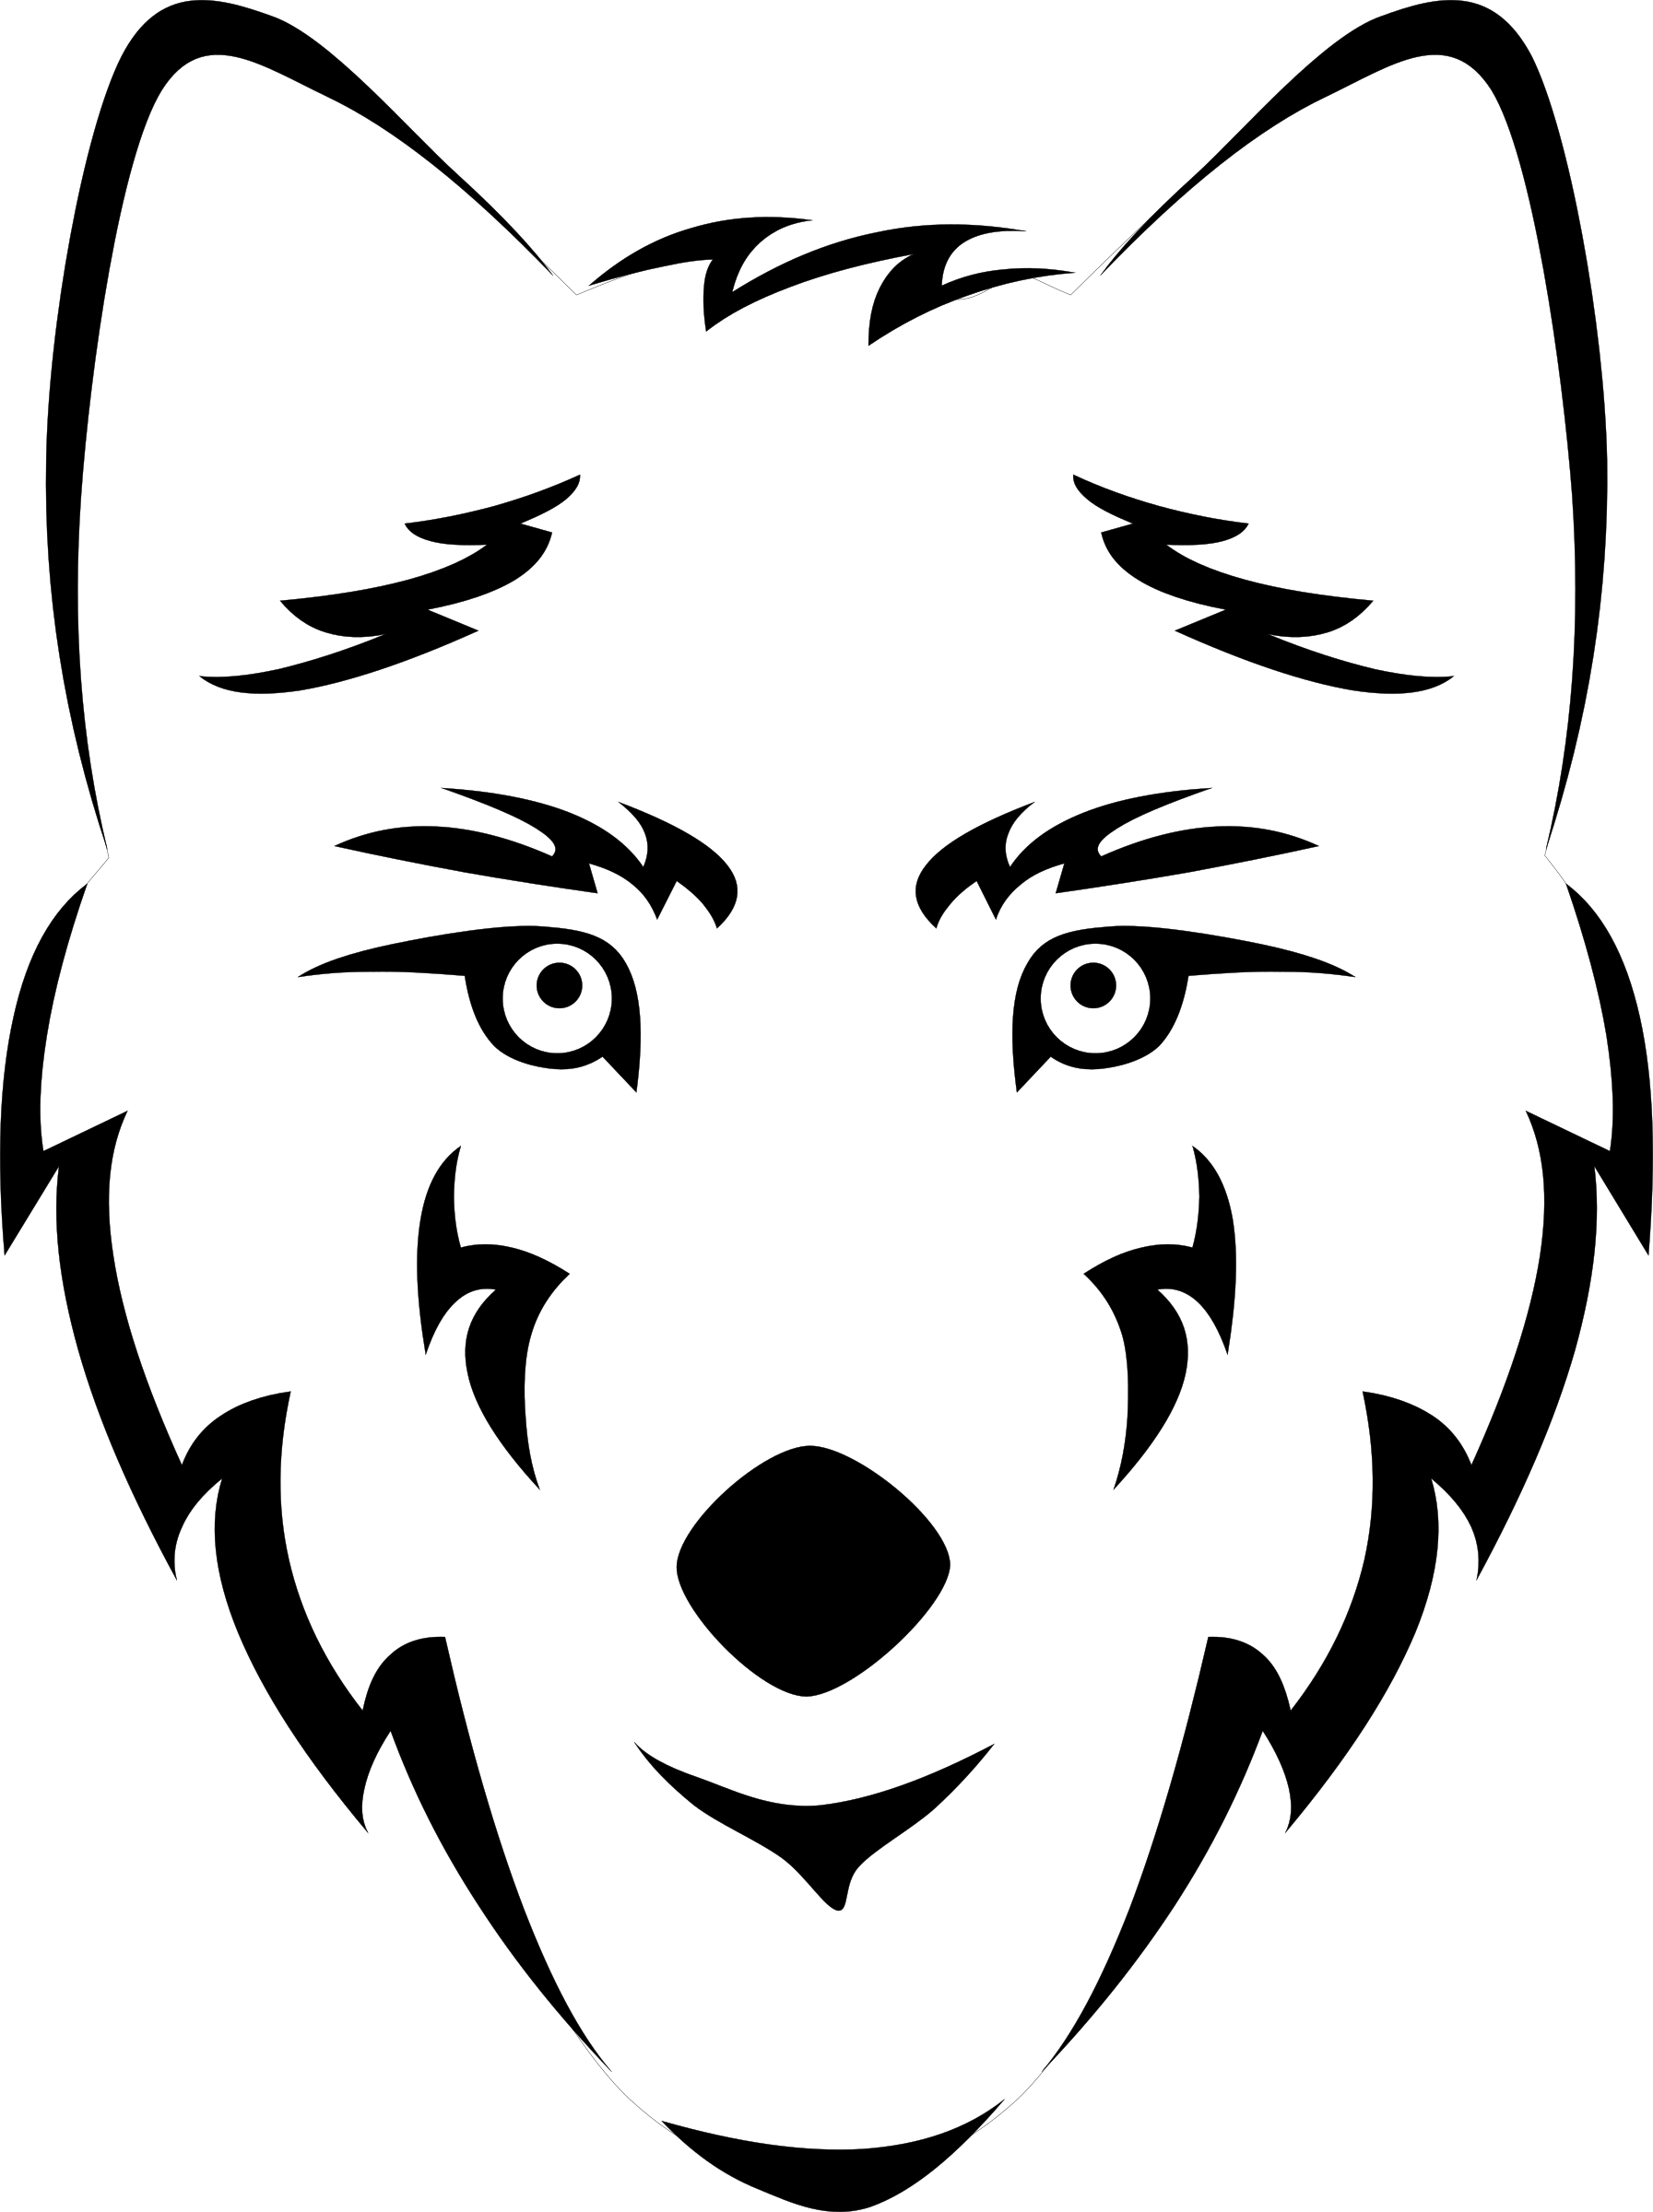 Wolf face coloring - photo#8